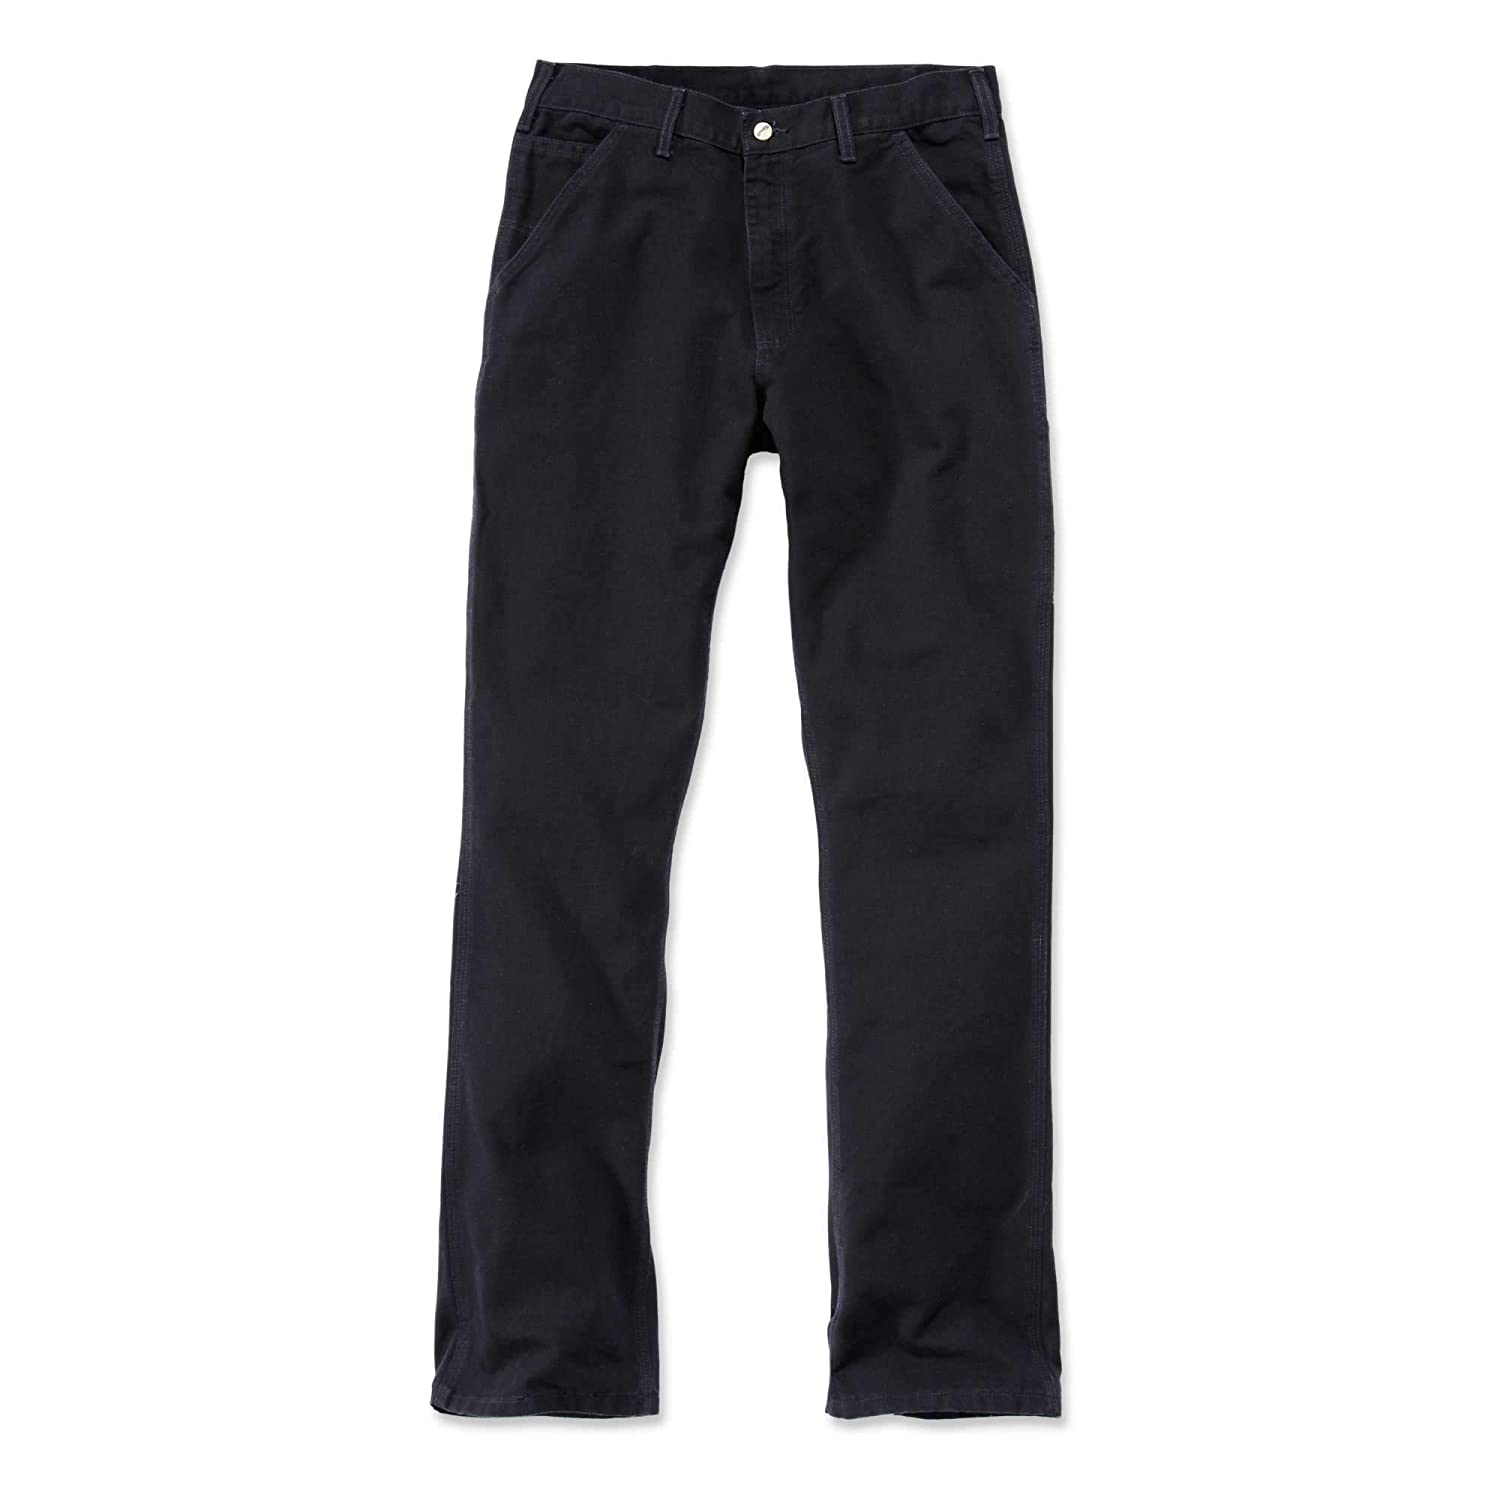 ce2cf6611ed Carhartt Eb011 Mens Washed Duck Work Wear Trouser Pant: Amazon.co.uk:  Clothing